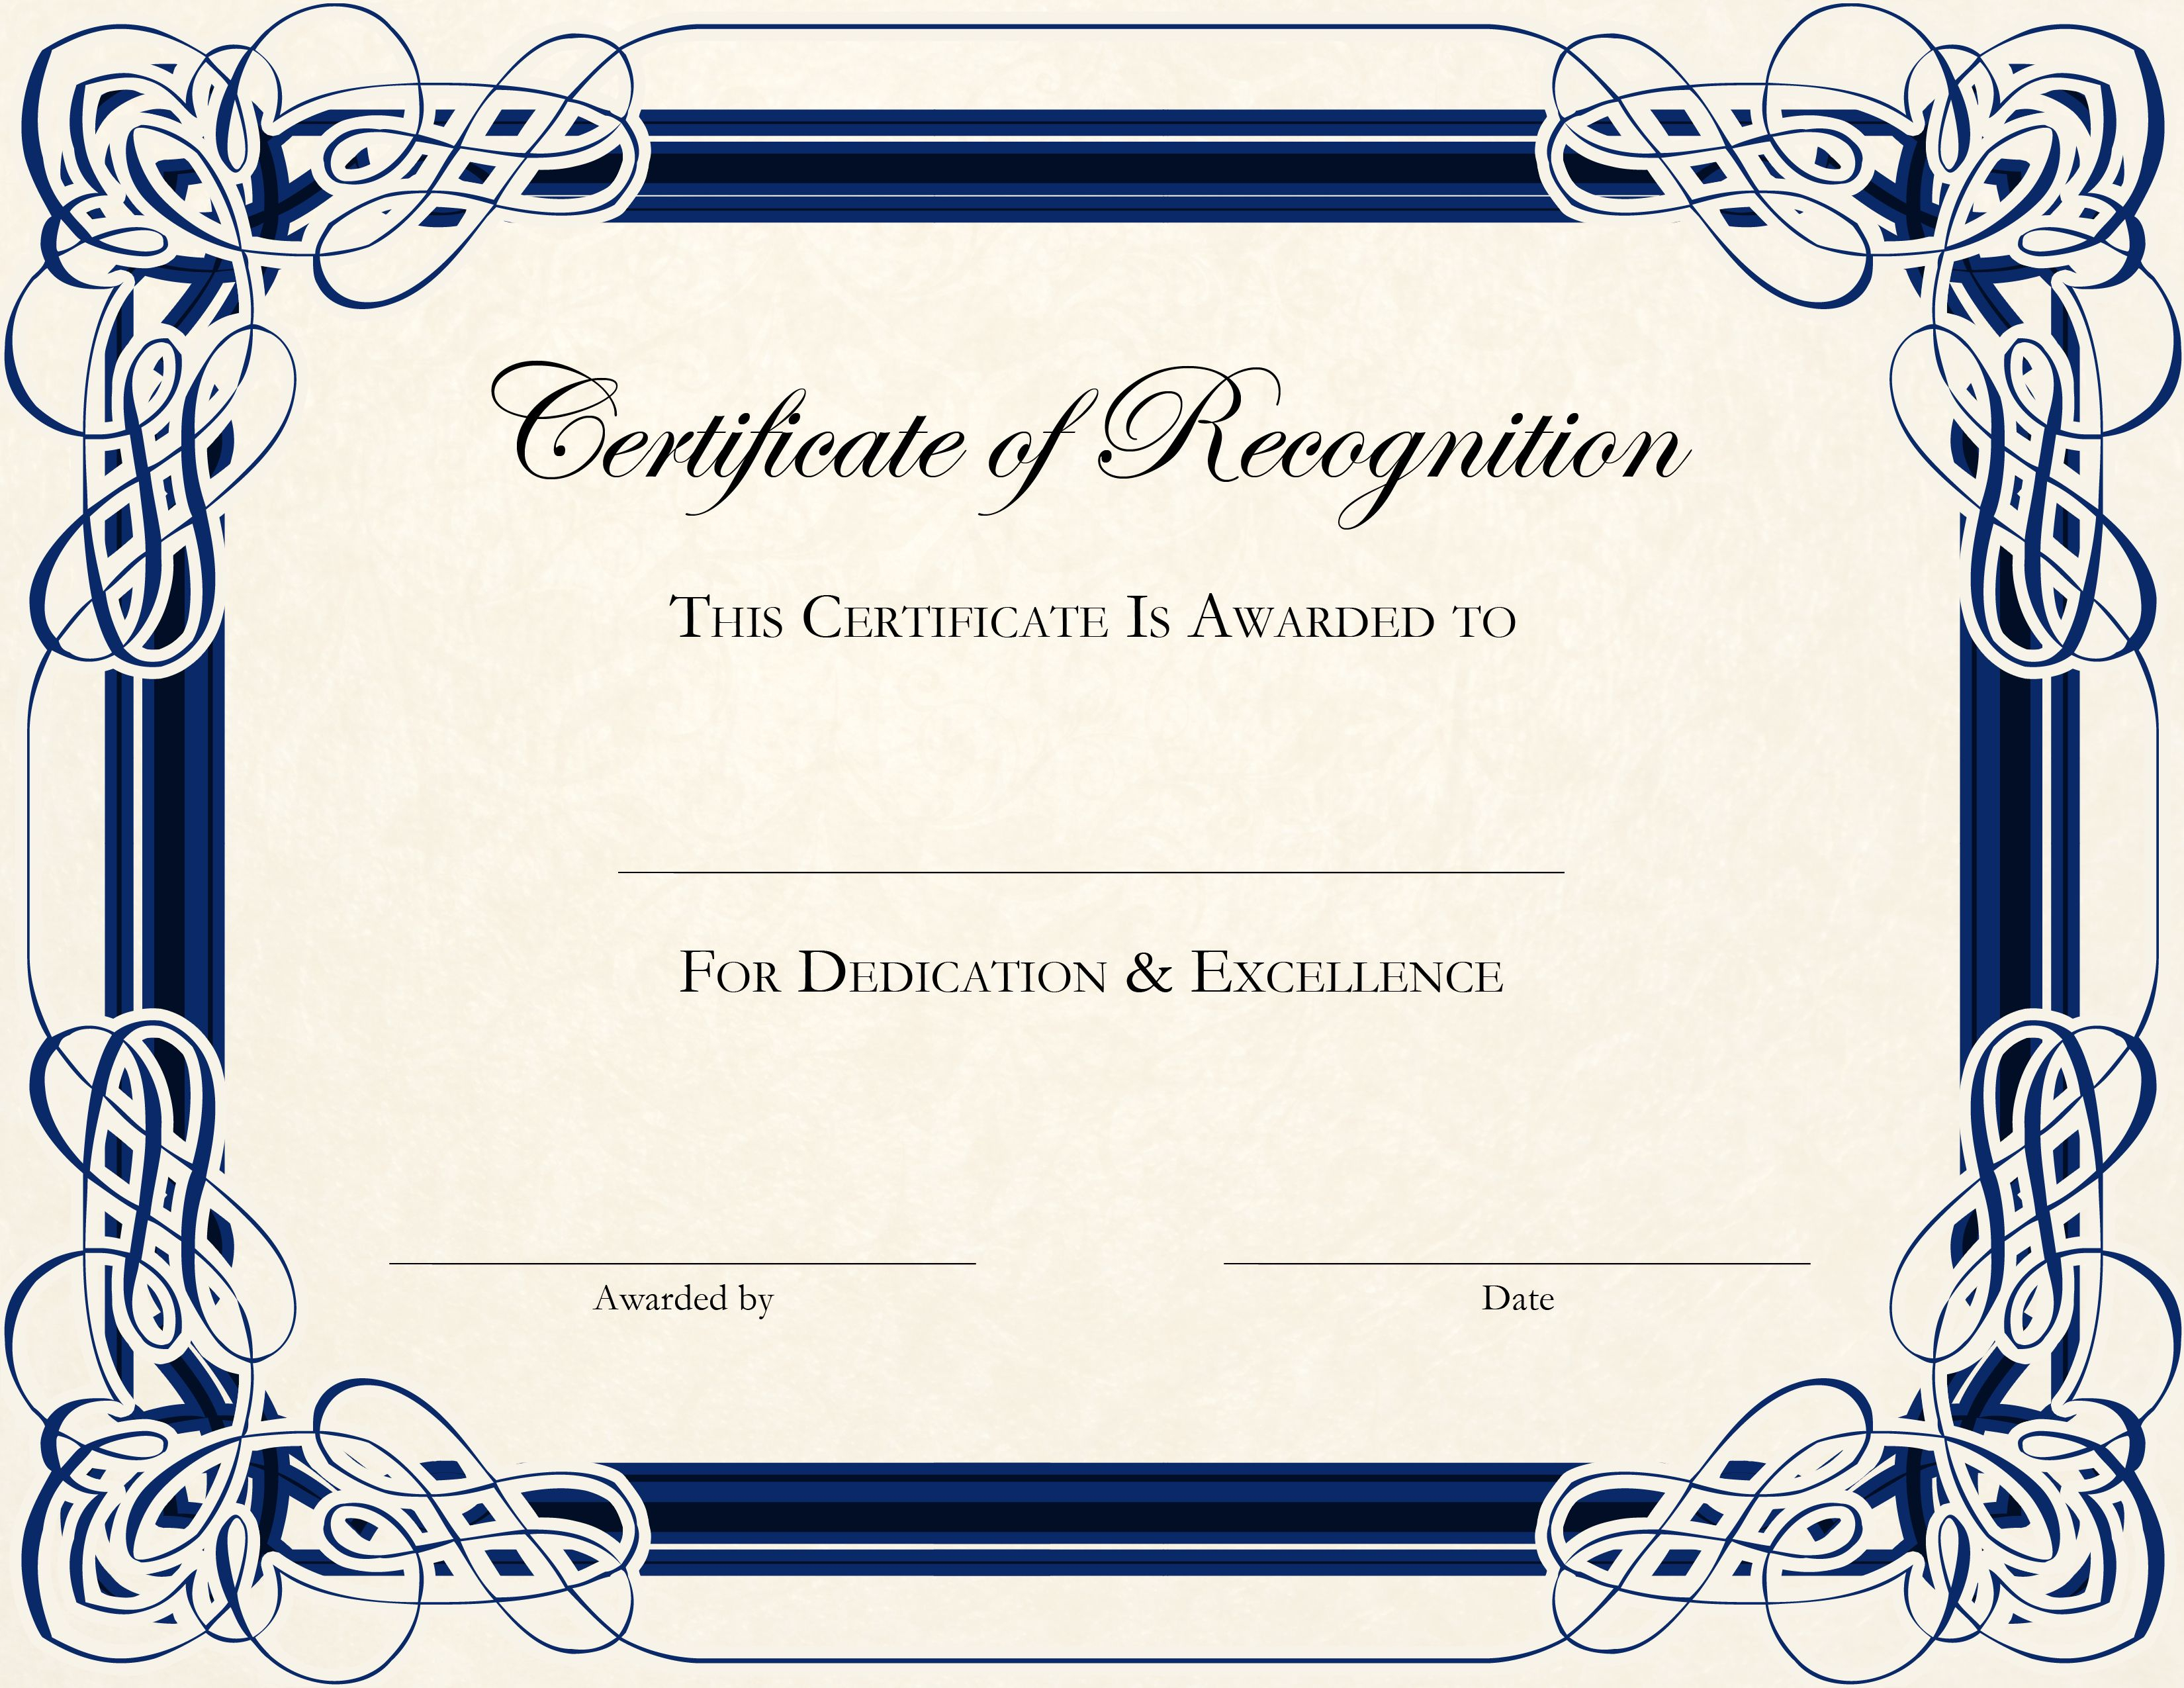 Certificate Template Designs Recognition Docs | Blankets Regarding Printable Certificate Of Recognition Templates Free